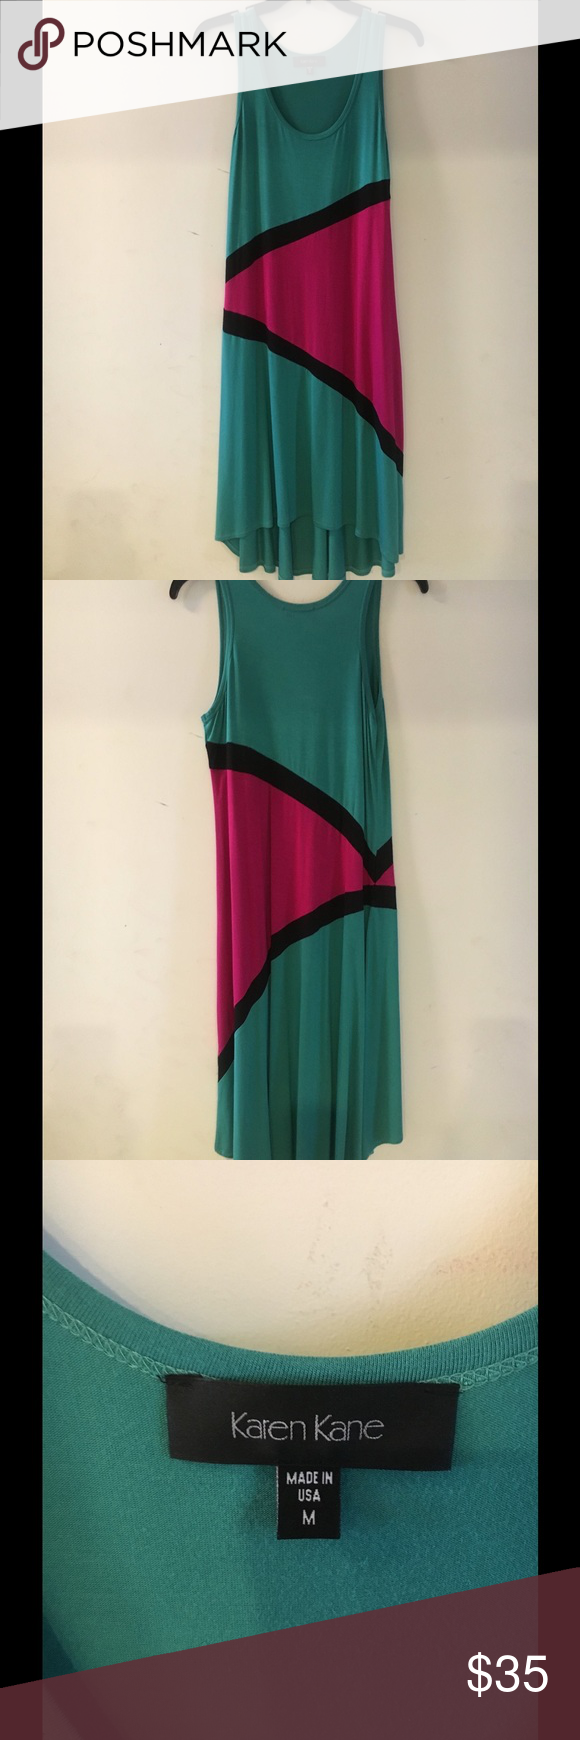 🌸Karen Kane 🌸LOWEST PRICE🌺Color block Dress 👗Karen Kane👗Greenish with magenta (bright pink) and black. New without tags. 🇺🇸MADE IN THE USA🇺🇸Asymmetrical hem. Bought took tag off and never wore.  For measurements please see the Karen Kane size chart included with the pictures. Dresses Asymmetrical